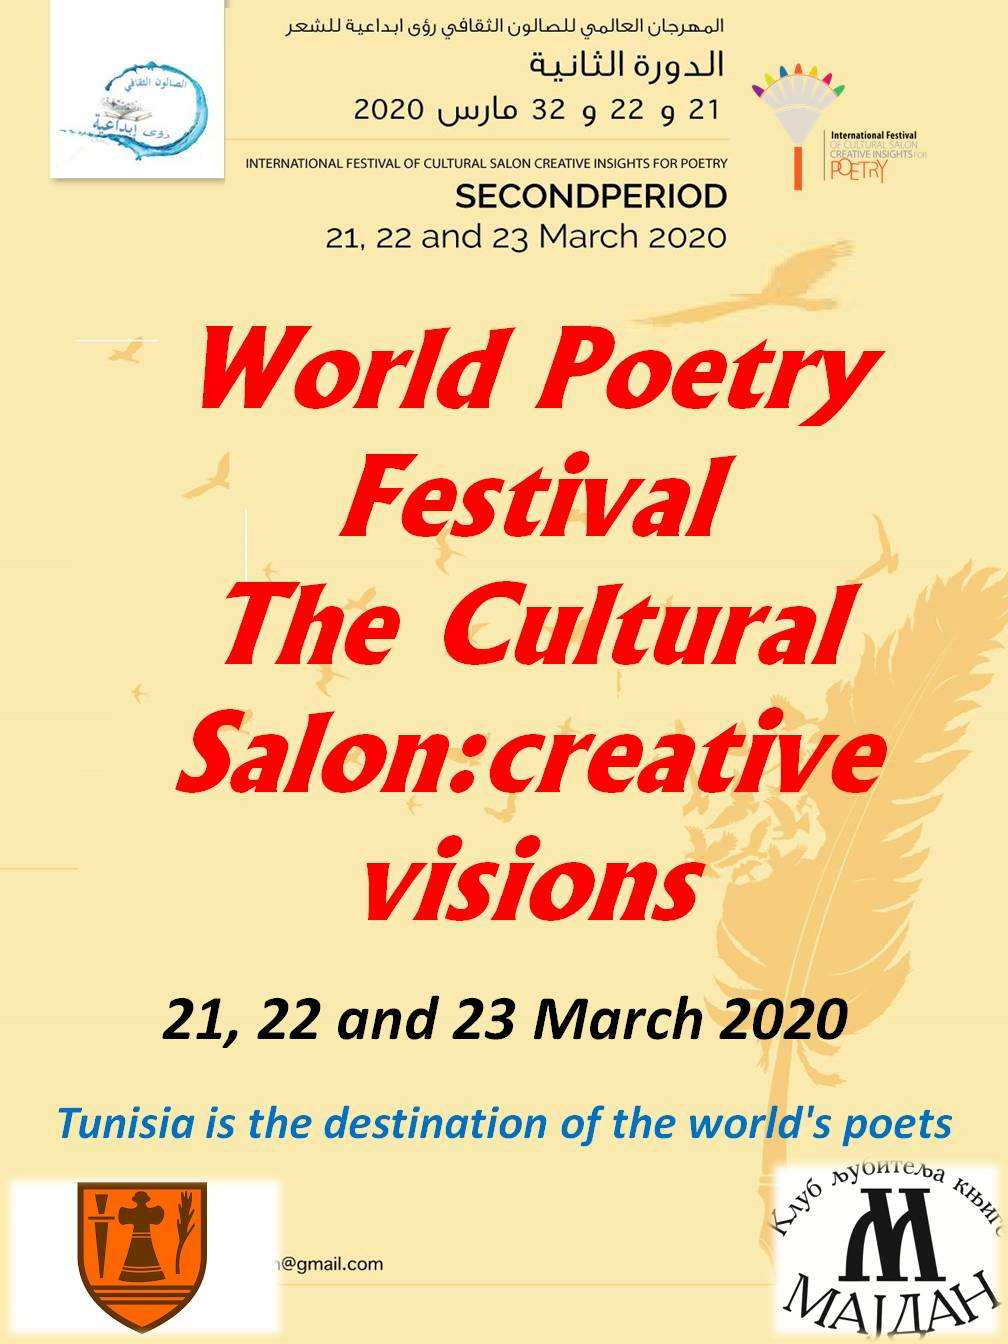 world poetry festival : the cultural salon creative visions